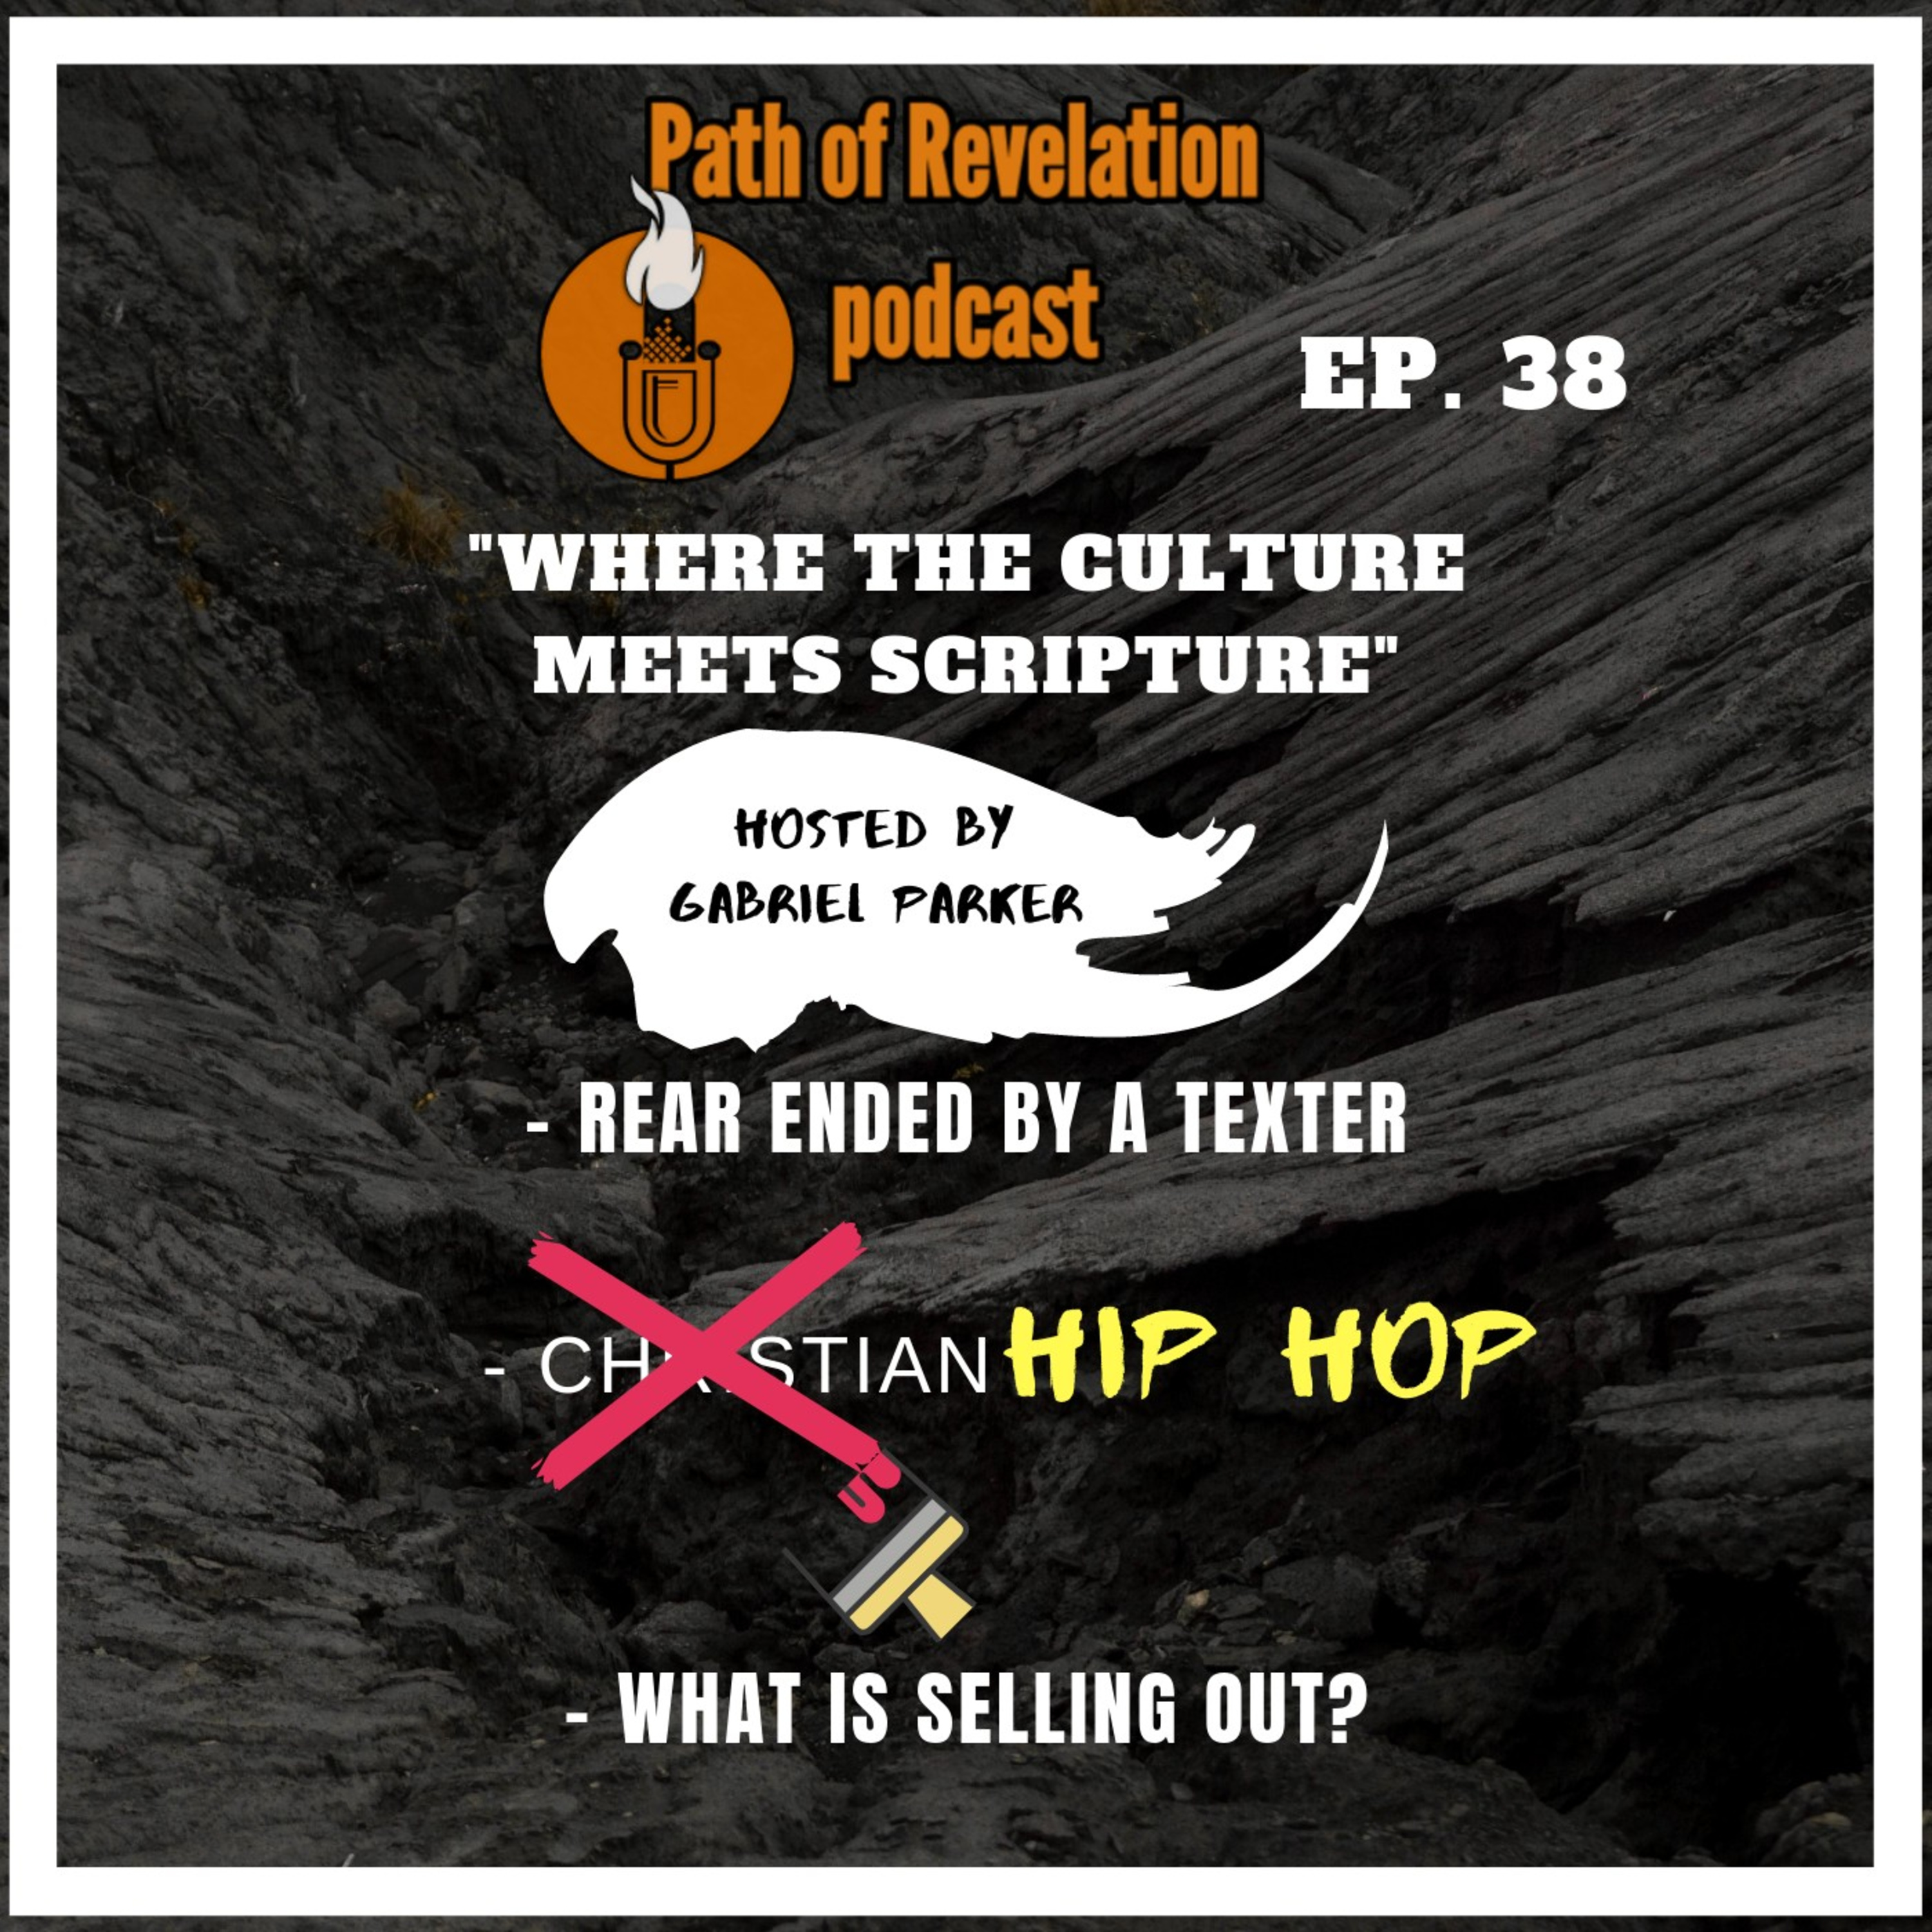 Path of Revelation Podcast: Episode 38